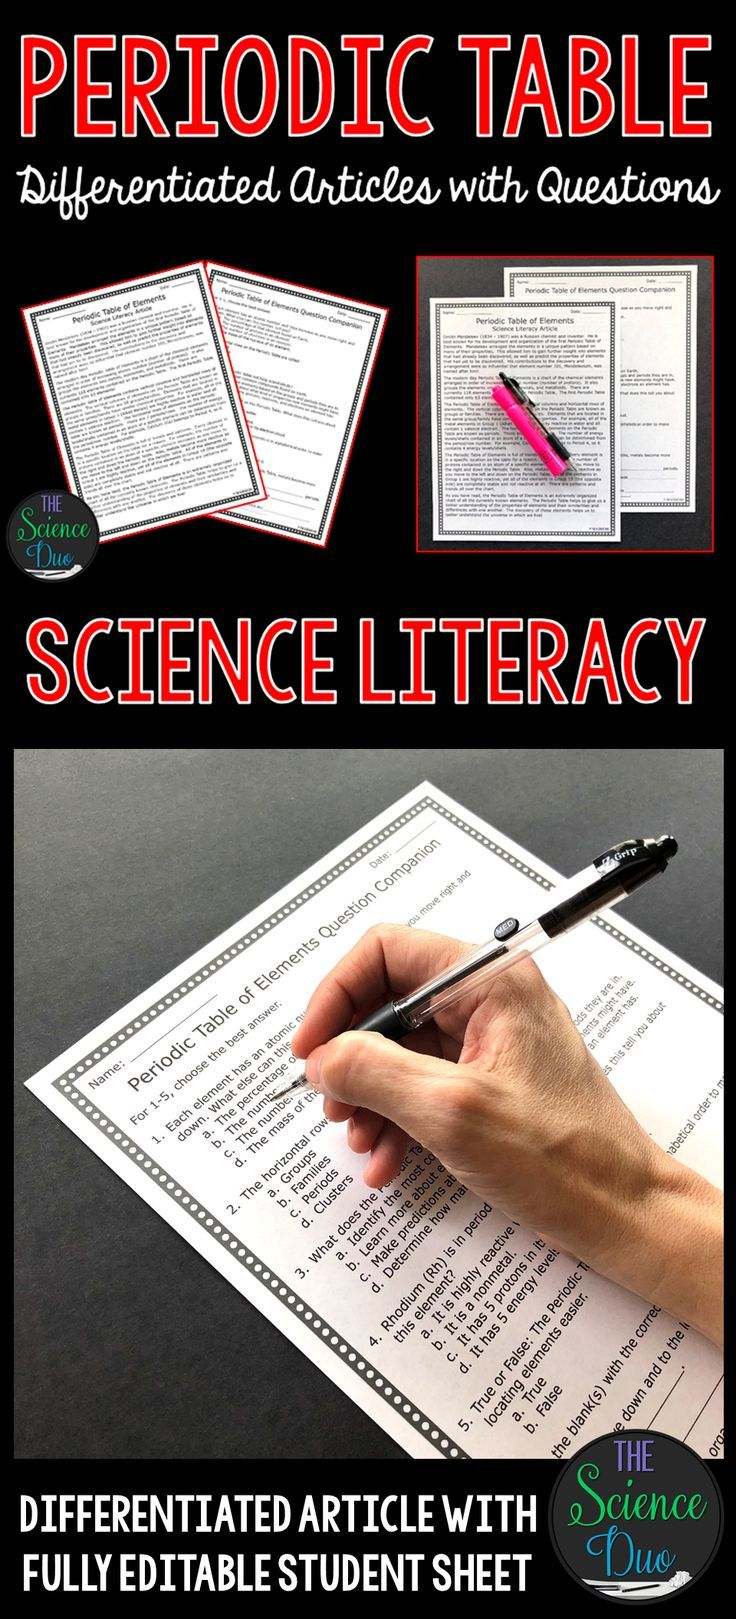 Periodic table of elements science literacy article science periodic table of elements science literacy article science teacher pinterest ell students cross curricular and science classroom urtaz Choice Image